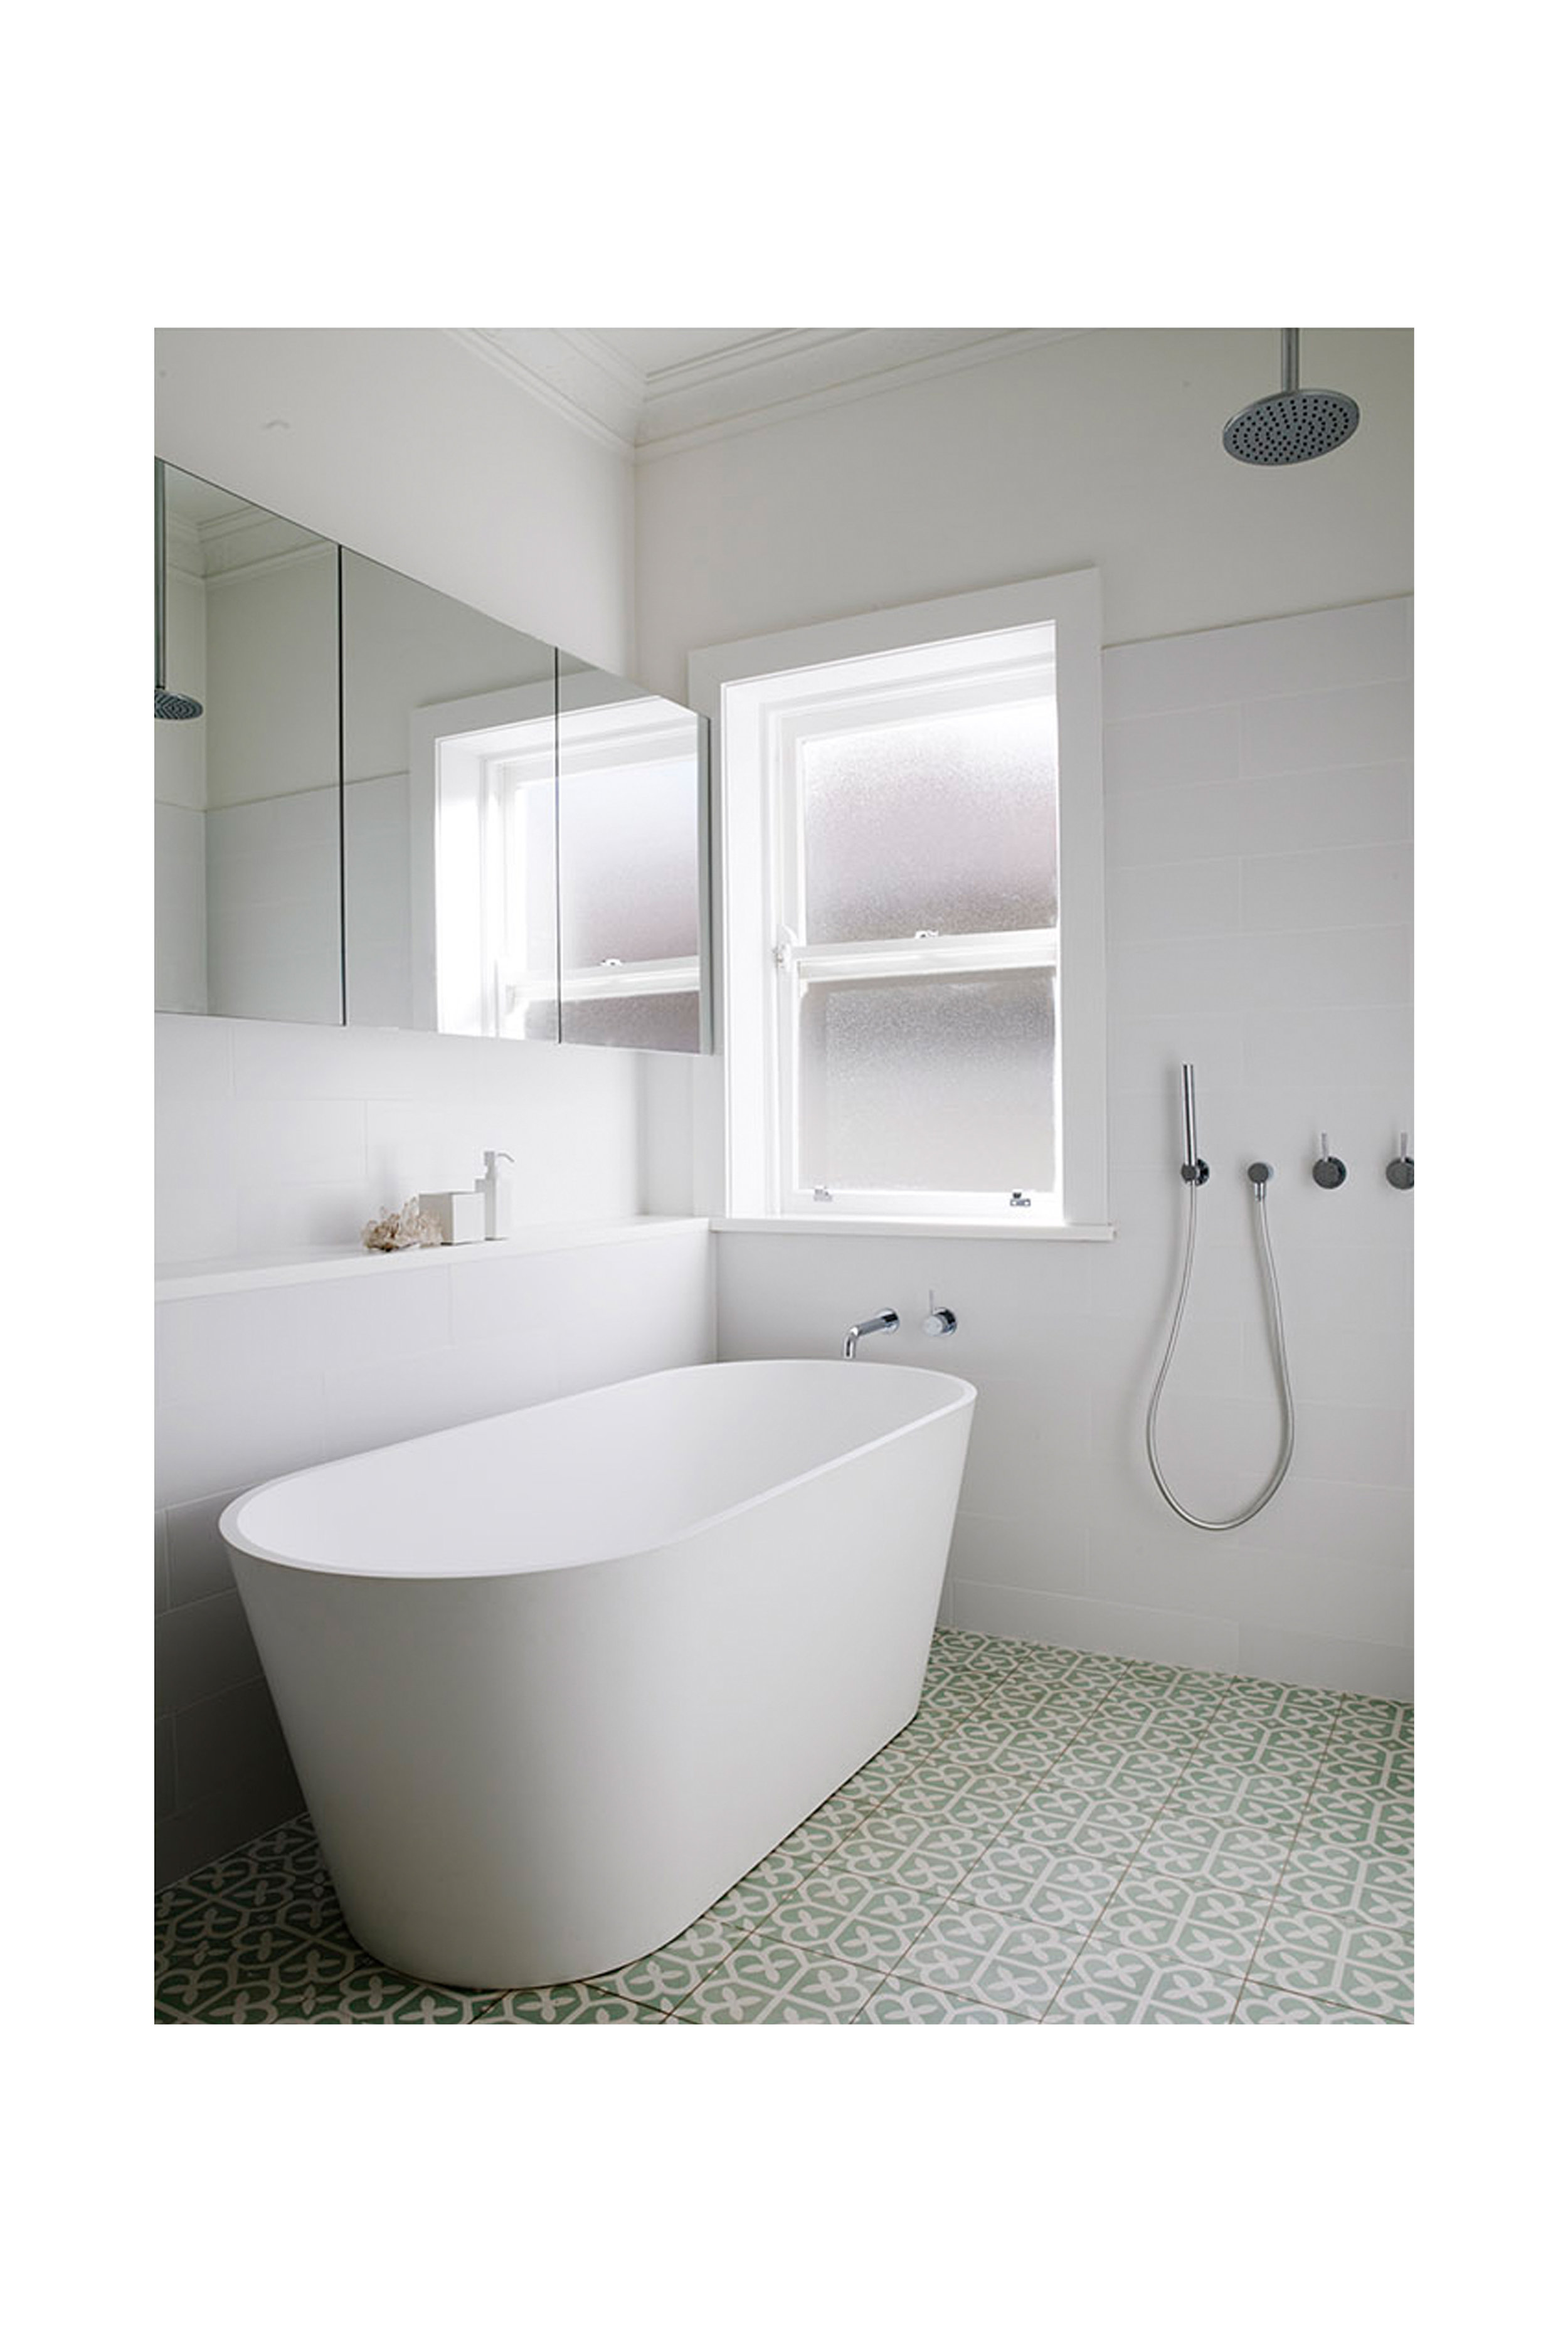 Website | File | Terence Yong Architecture | Coogee House : 2 in 1 | Alteration | A contemporary and elegant bathroom design with a touch of retro charm | 02.jpg